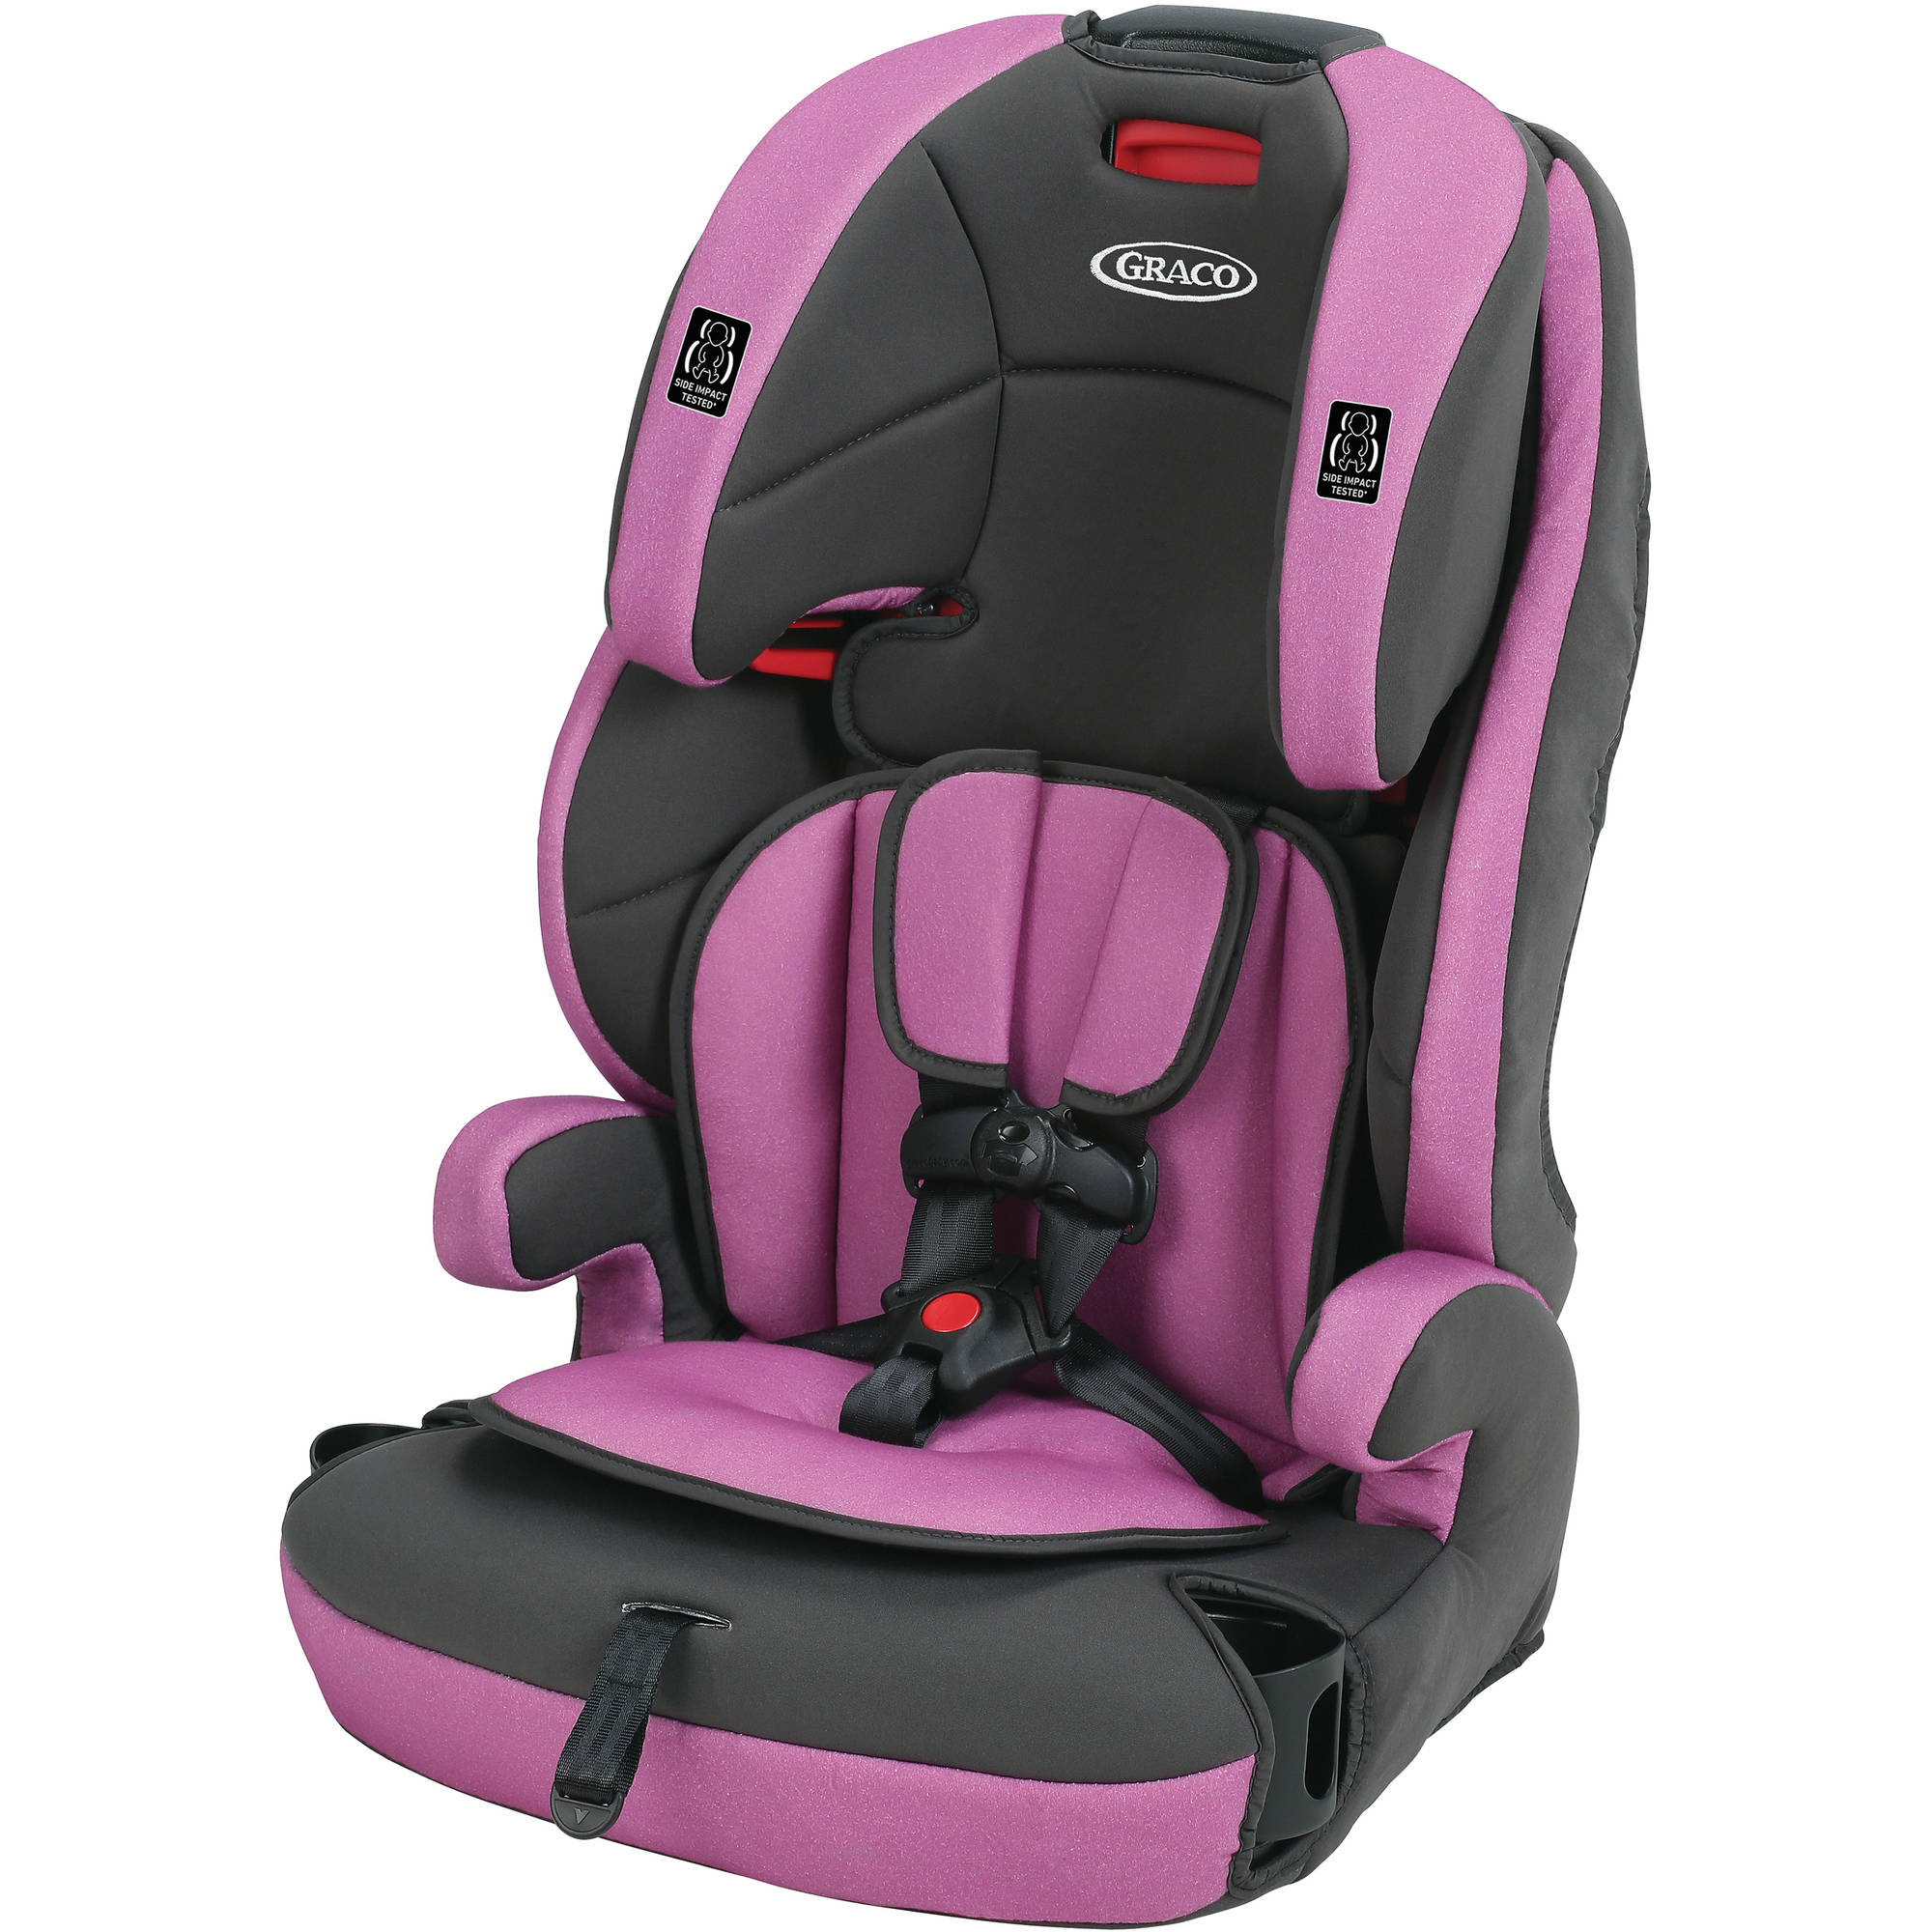 Graco Tranzitions 3-in-1 Harness Booster Car Seat, Kyte